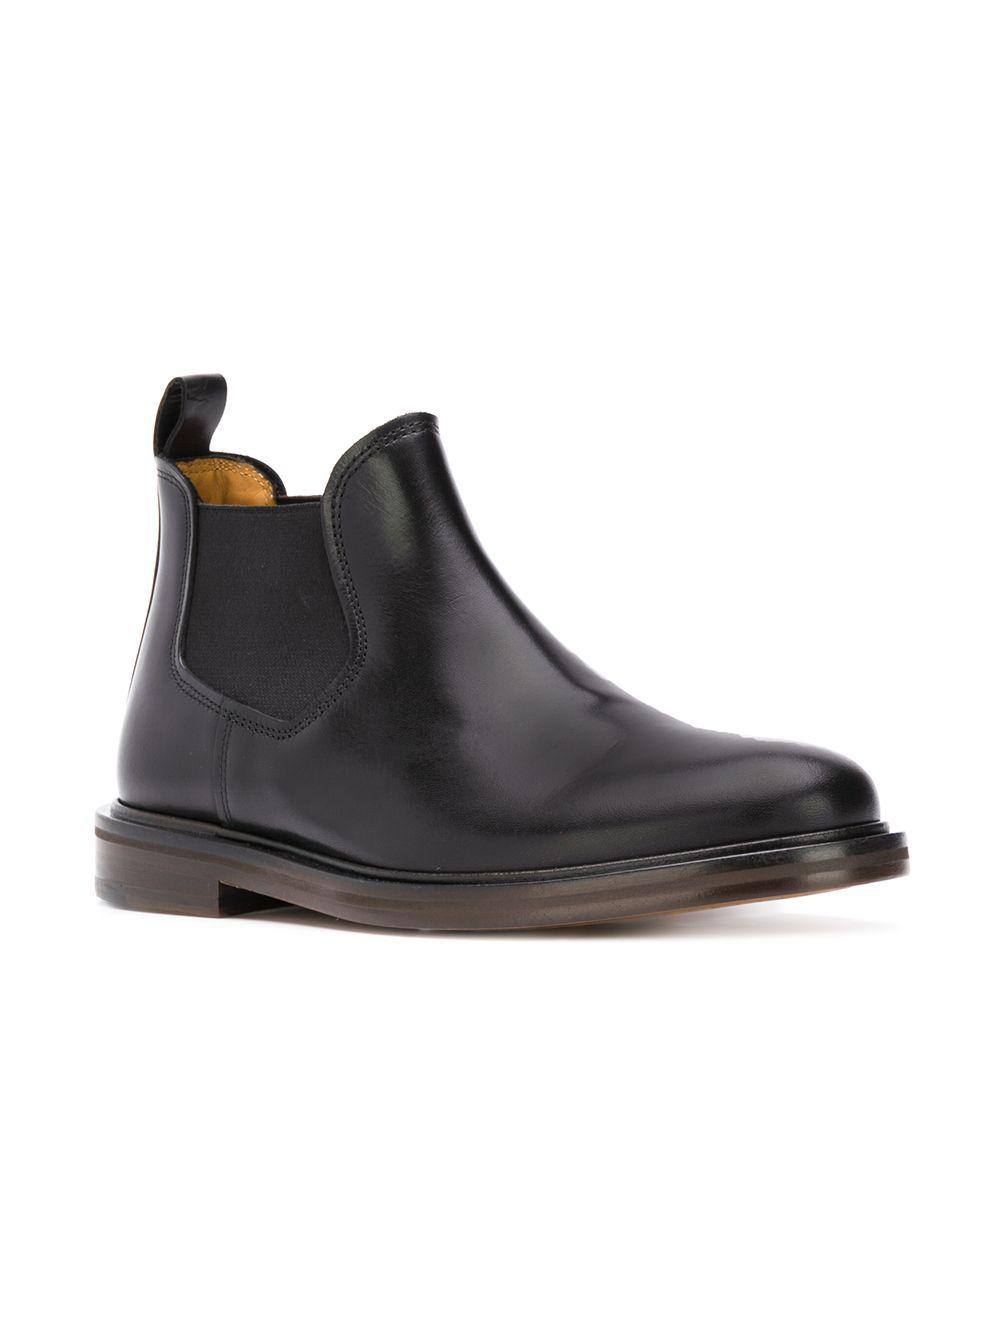 5a1c76f6fee0 Lyst - A.P.C. Classic Chelsea Boots in Black